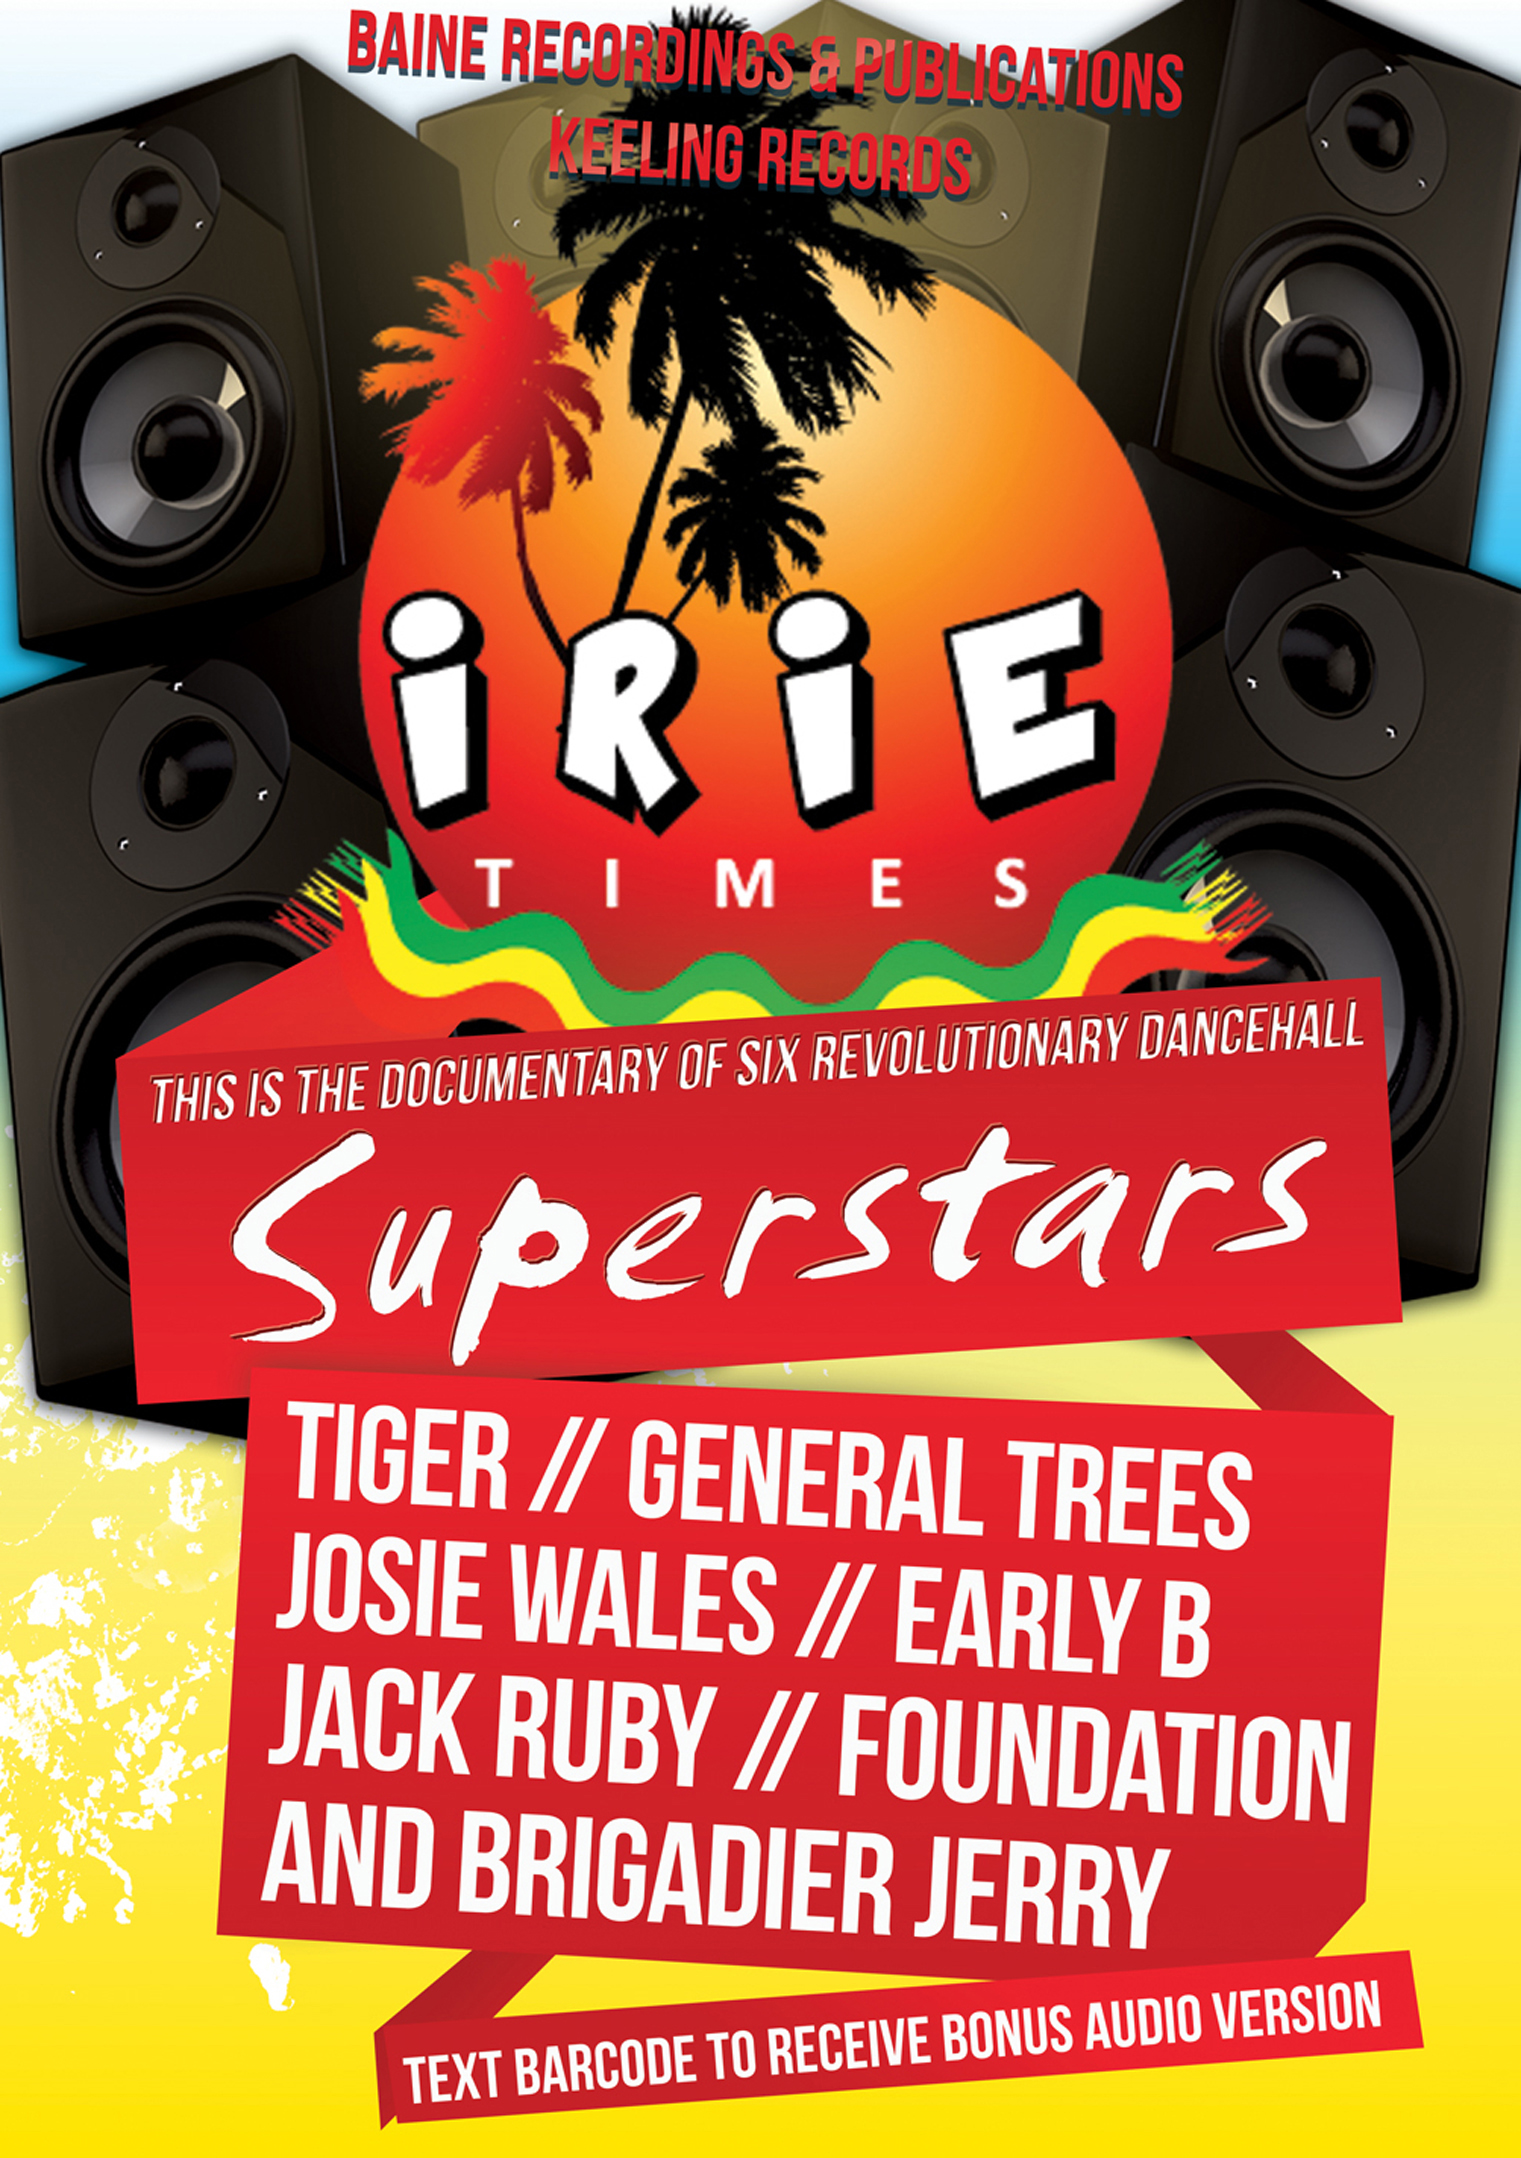 Irie Times